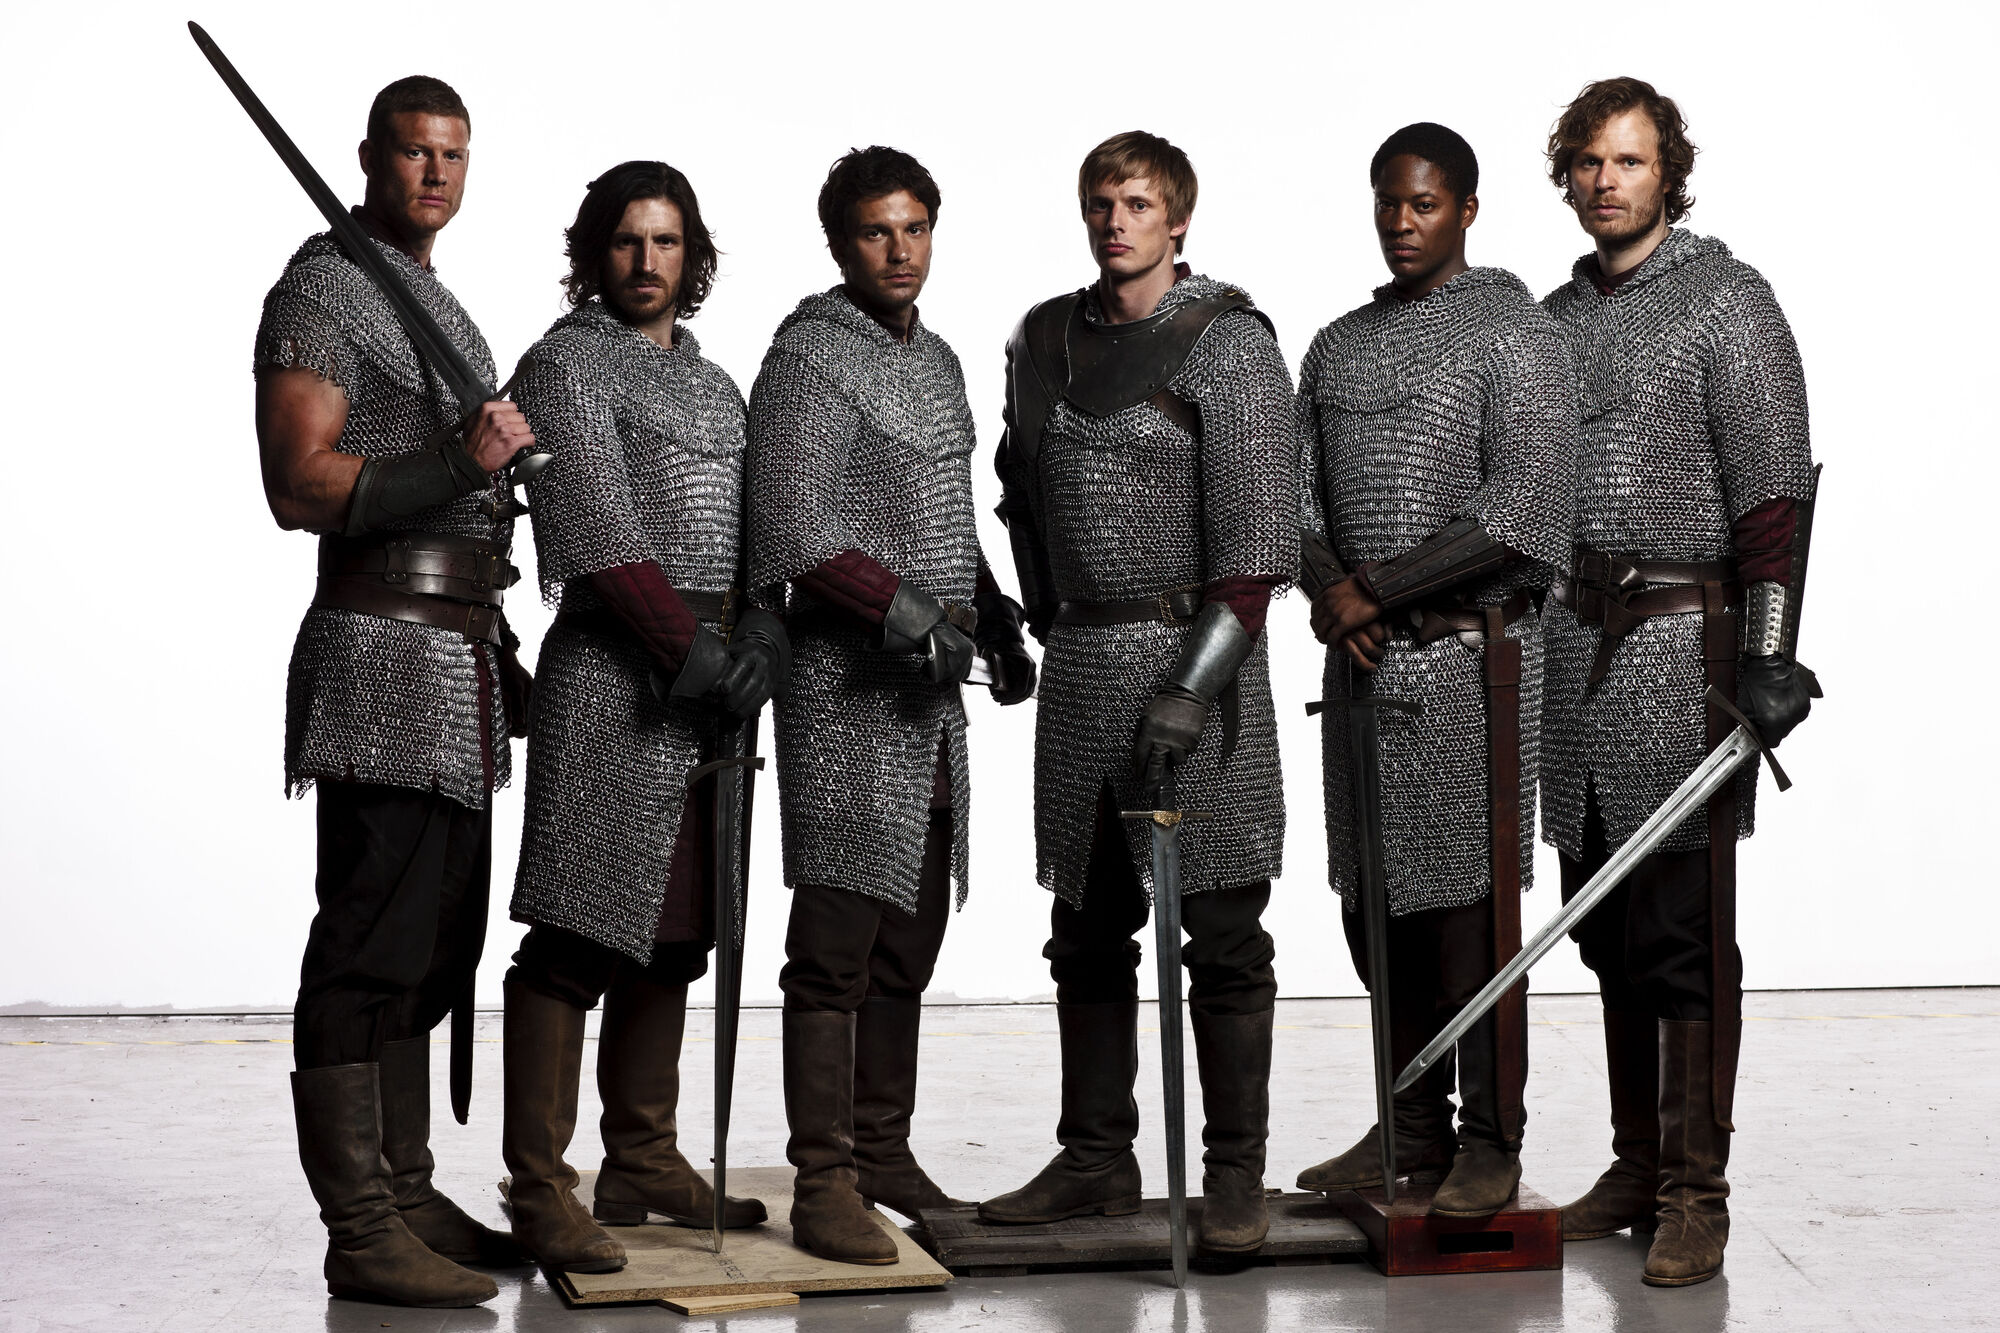 Knights of the Round Table | Merlin Wiki | FANDOM powered by